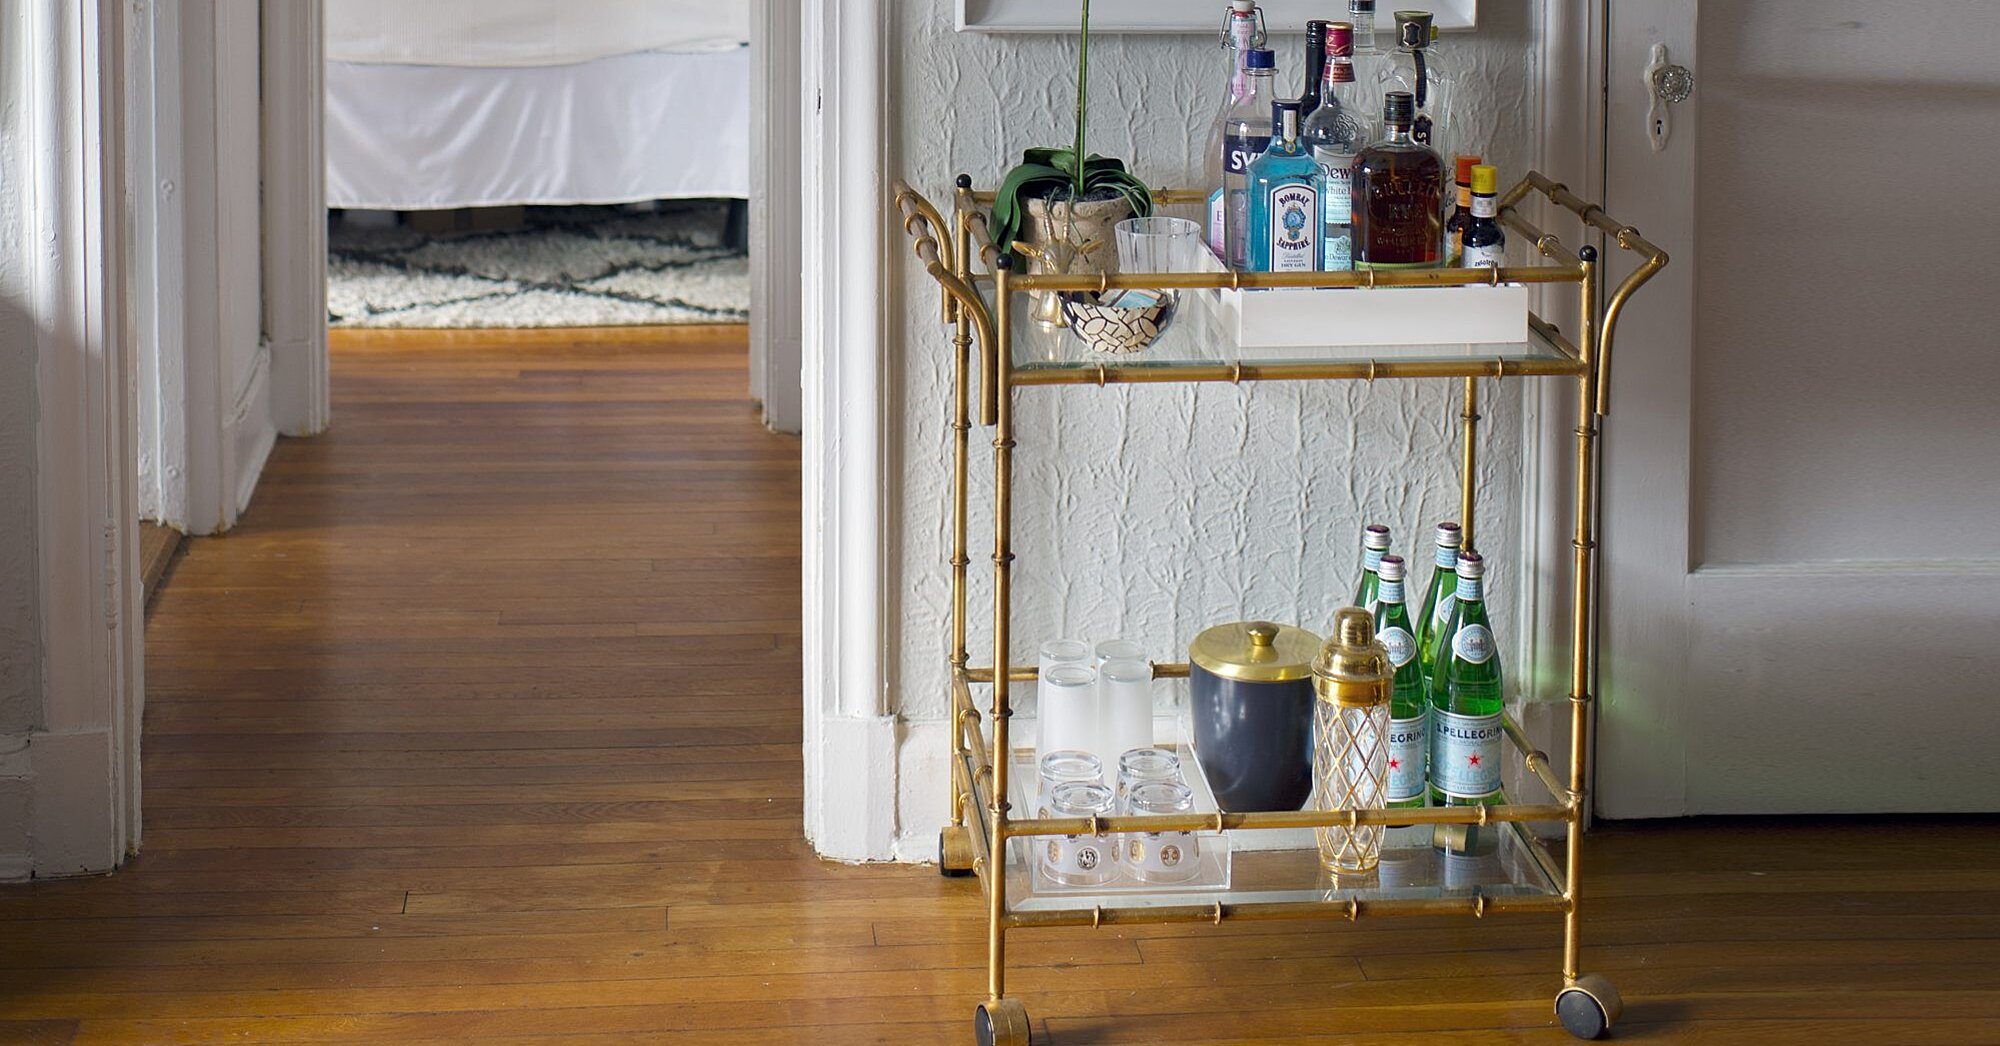 If You're Storing Wine in the Fridge or Vodka in the Freezer, You Need to Read This